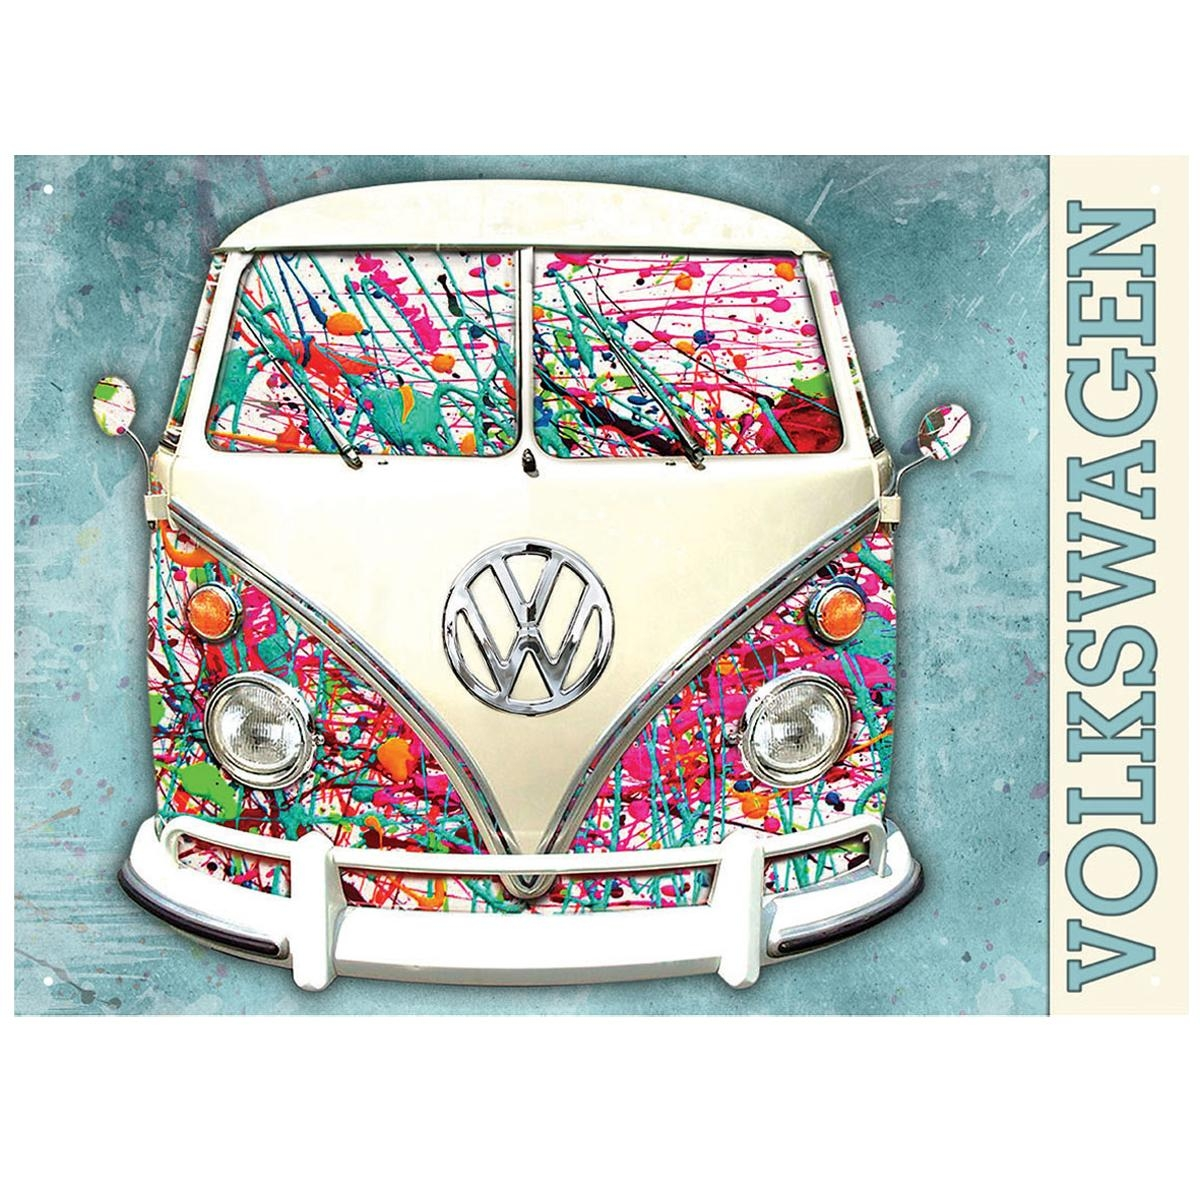 Official Vw Split Screen Camper Splatter Metal Wall Art Plaque Pertaining To Campervan Metal Wall Art (Image 12 of 20)